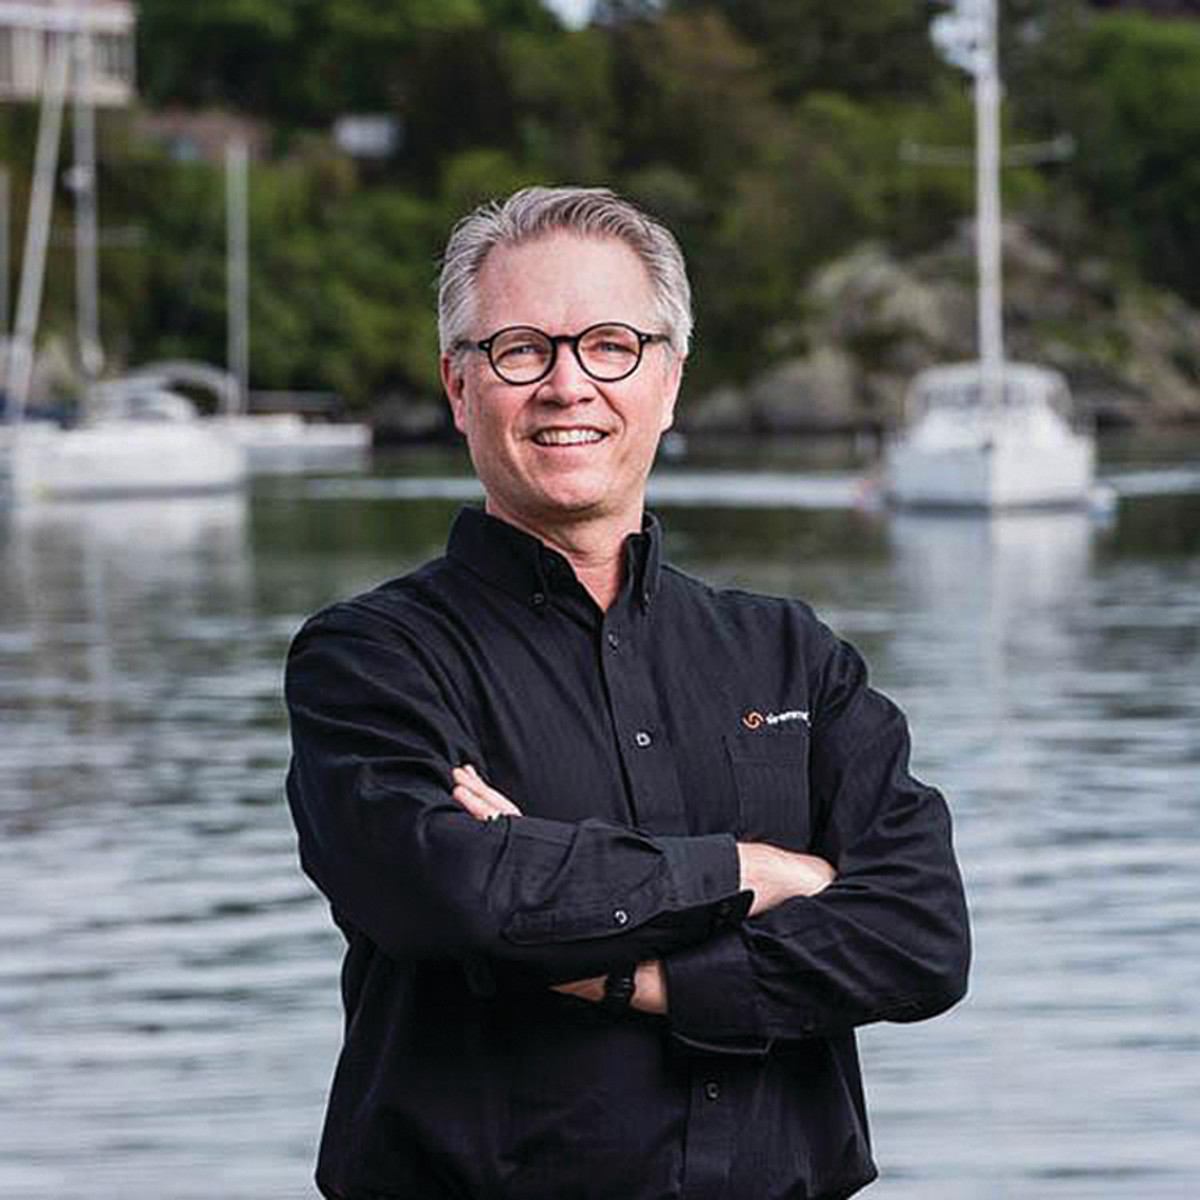 Siren Marine, an early adopter of telematics, continues its push toward the connected boat.